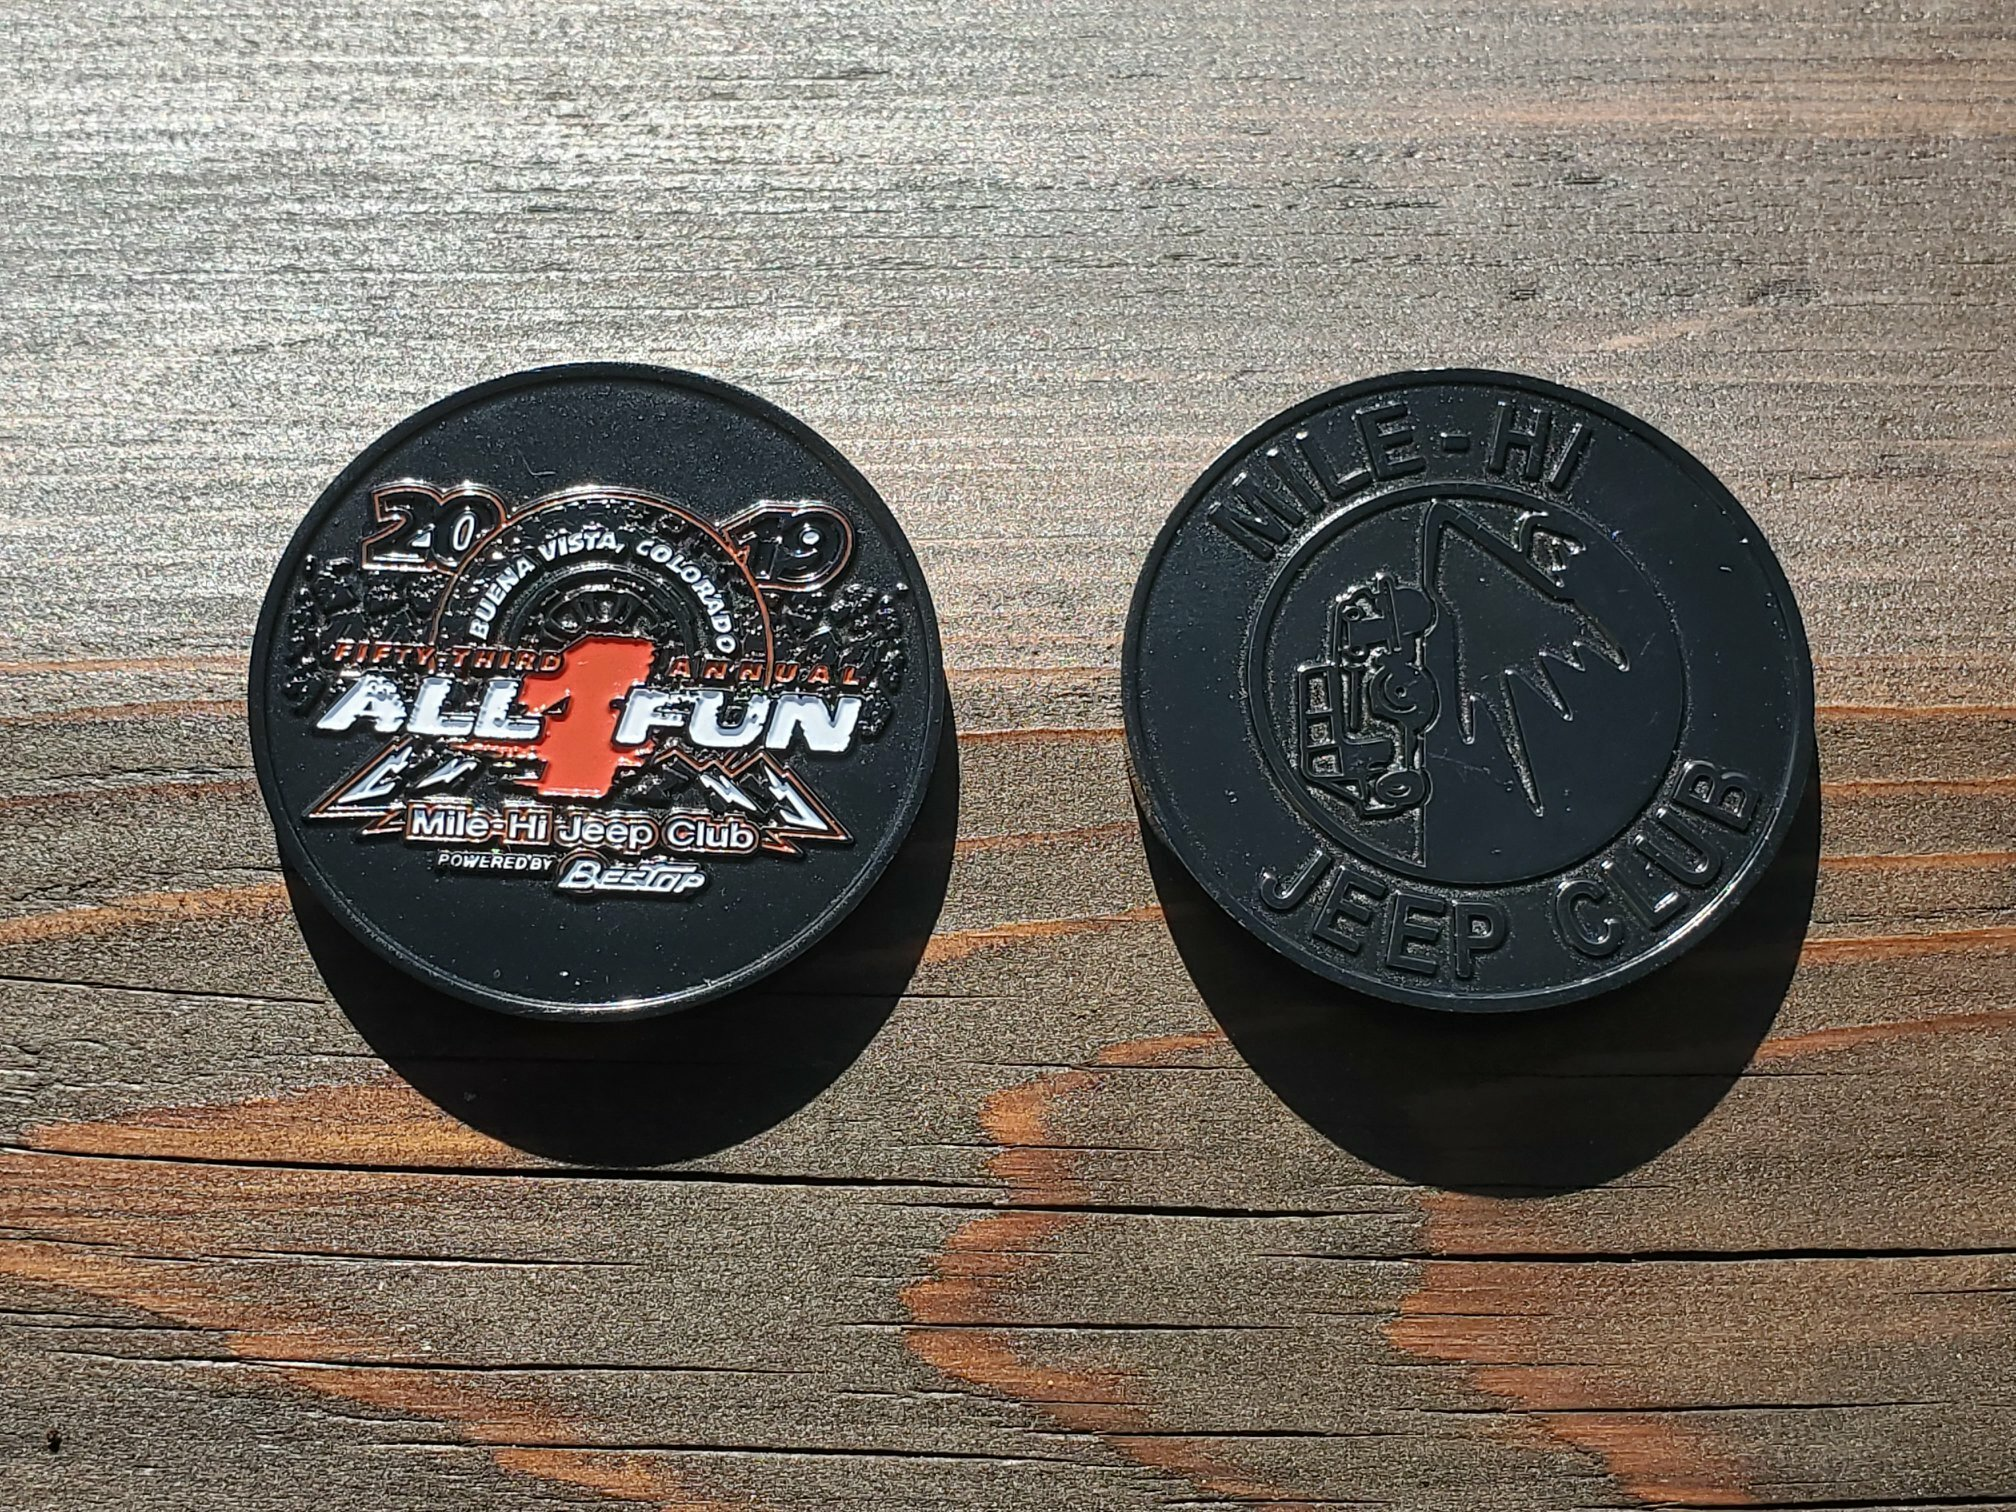 2019 All-4-Fun Challenge Coin